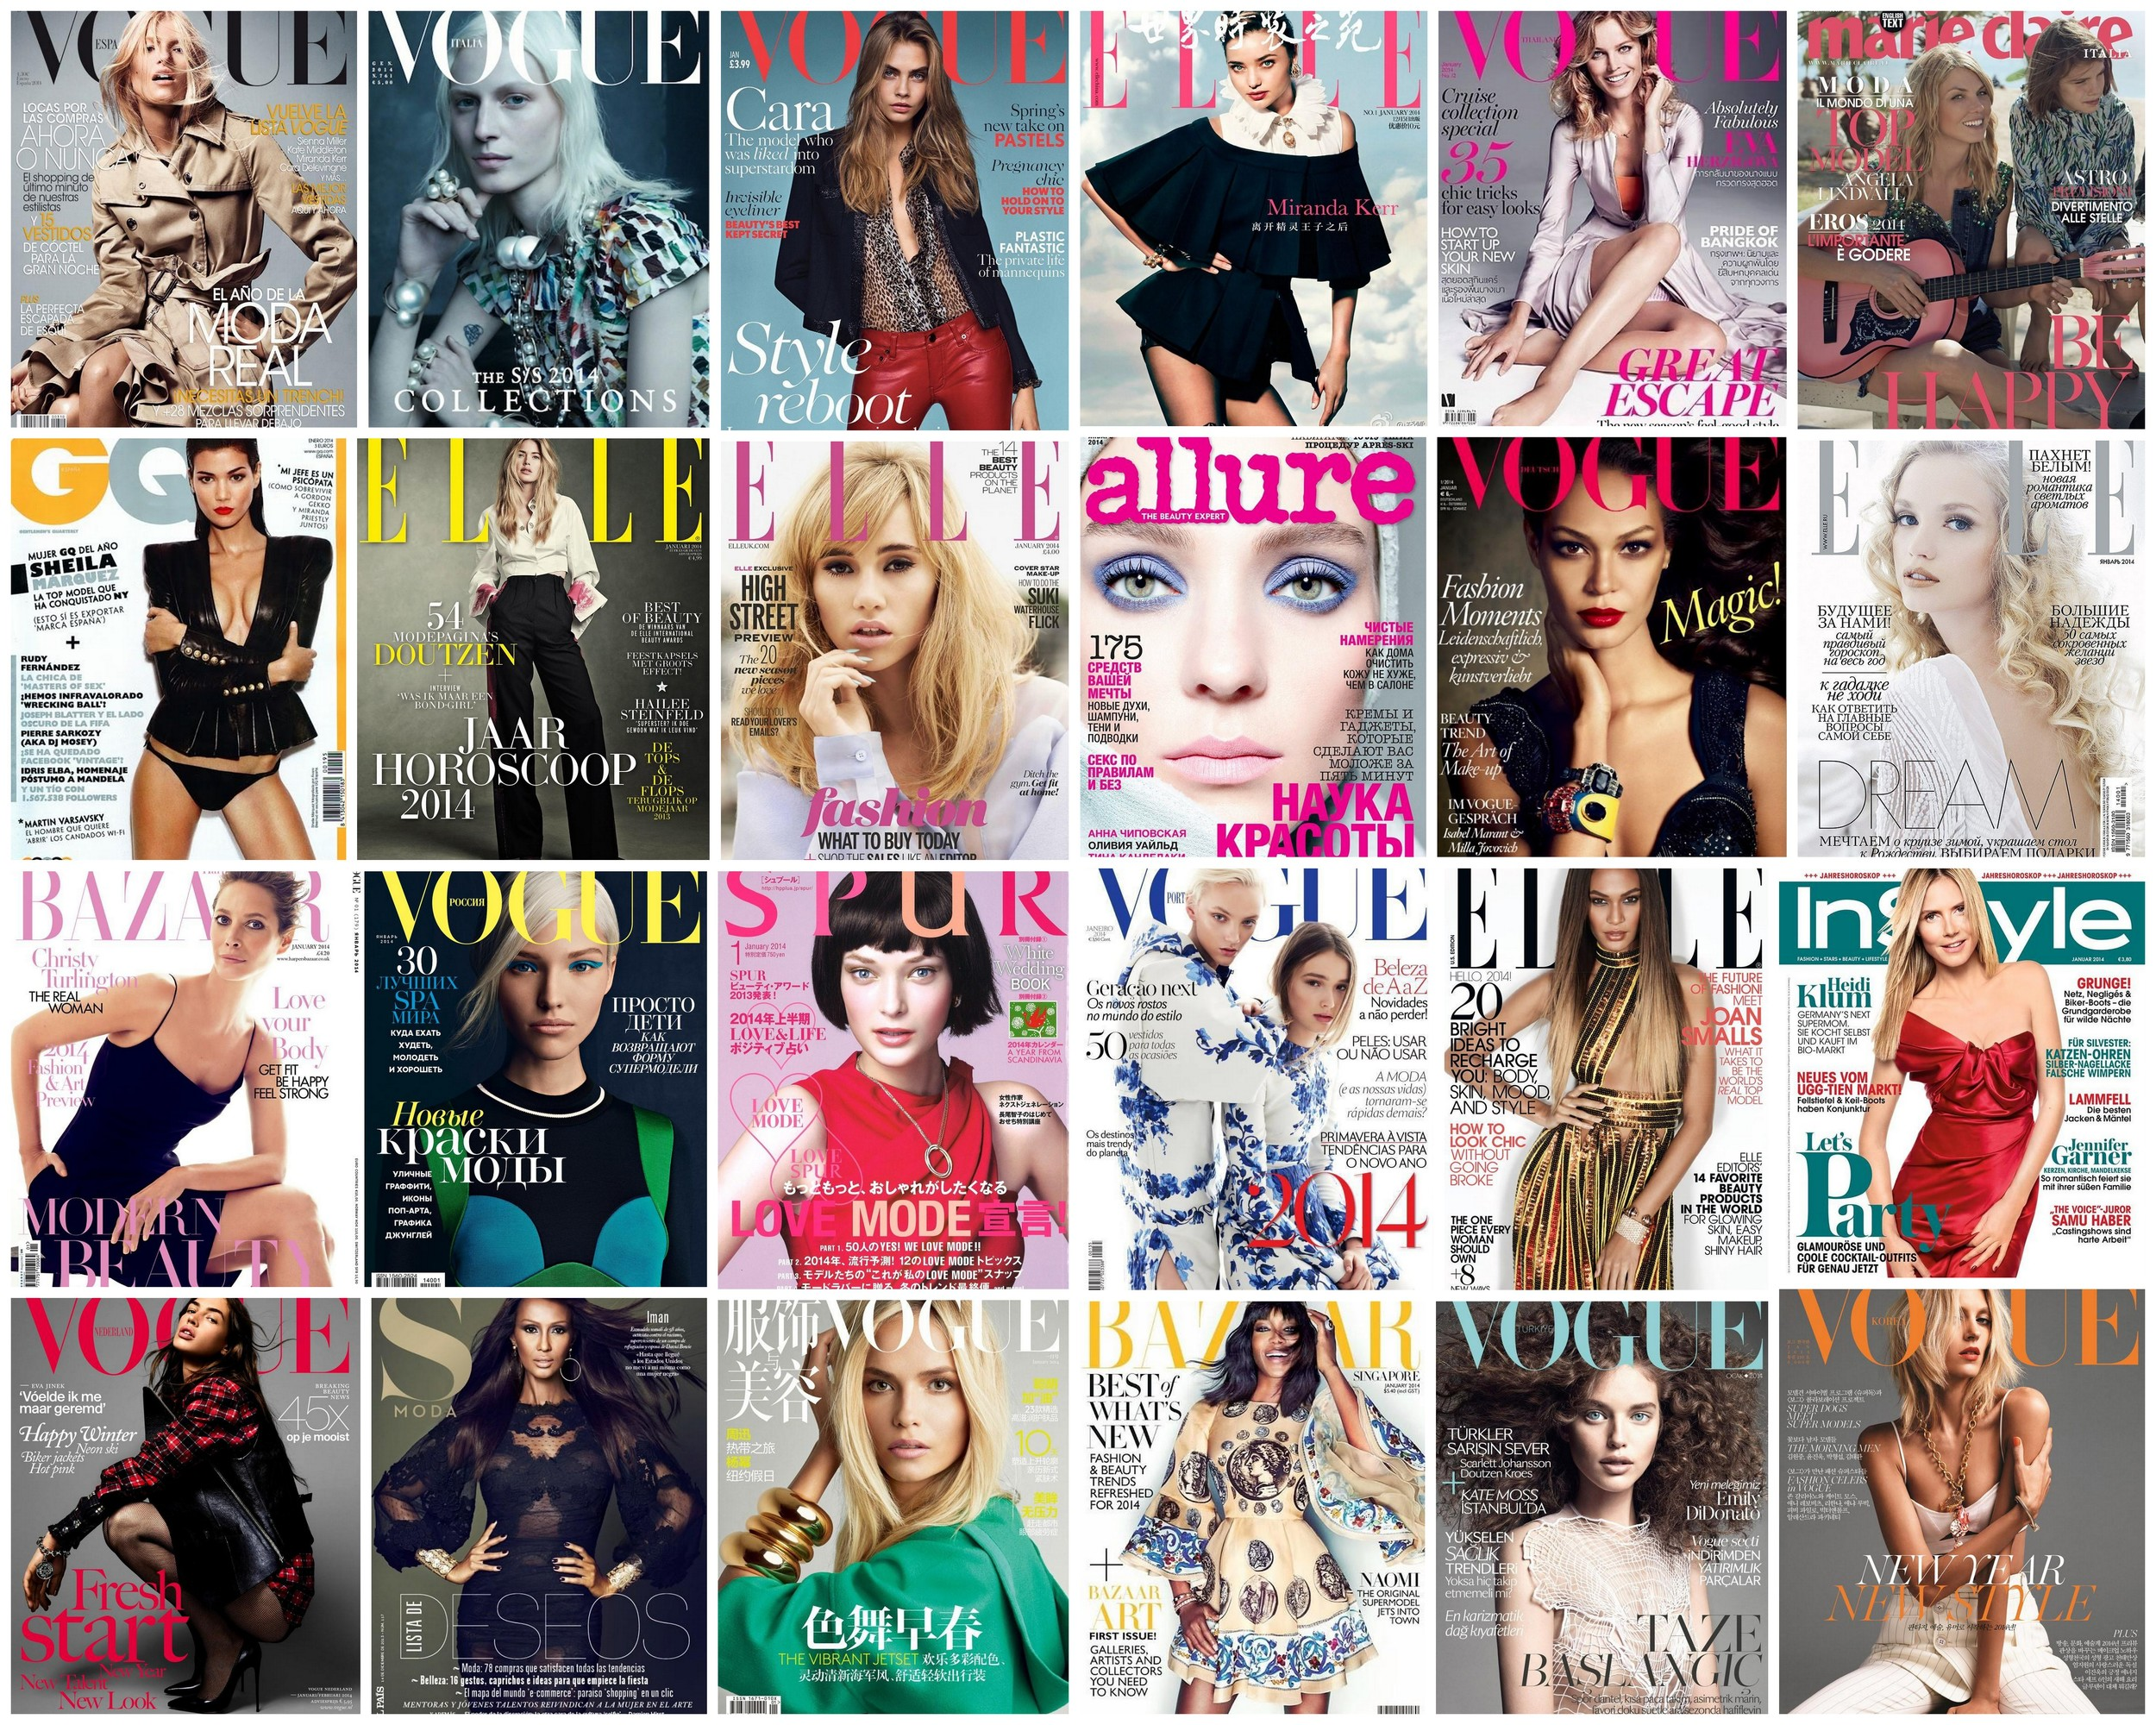 The January 2014 covers featuring a model